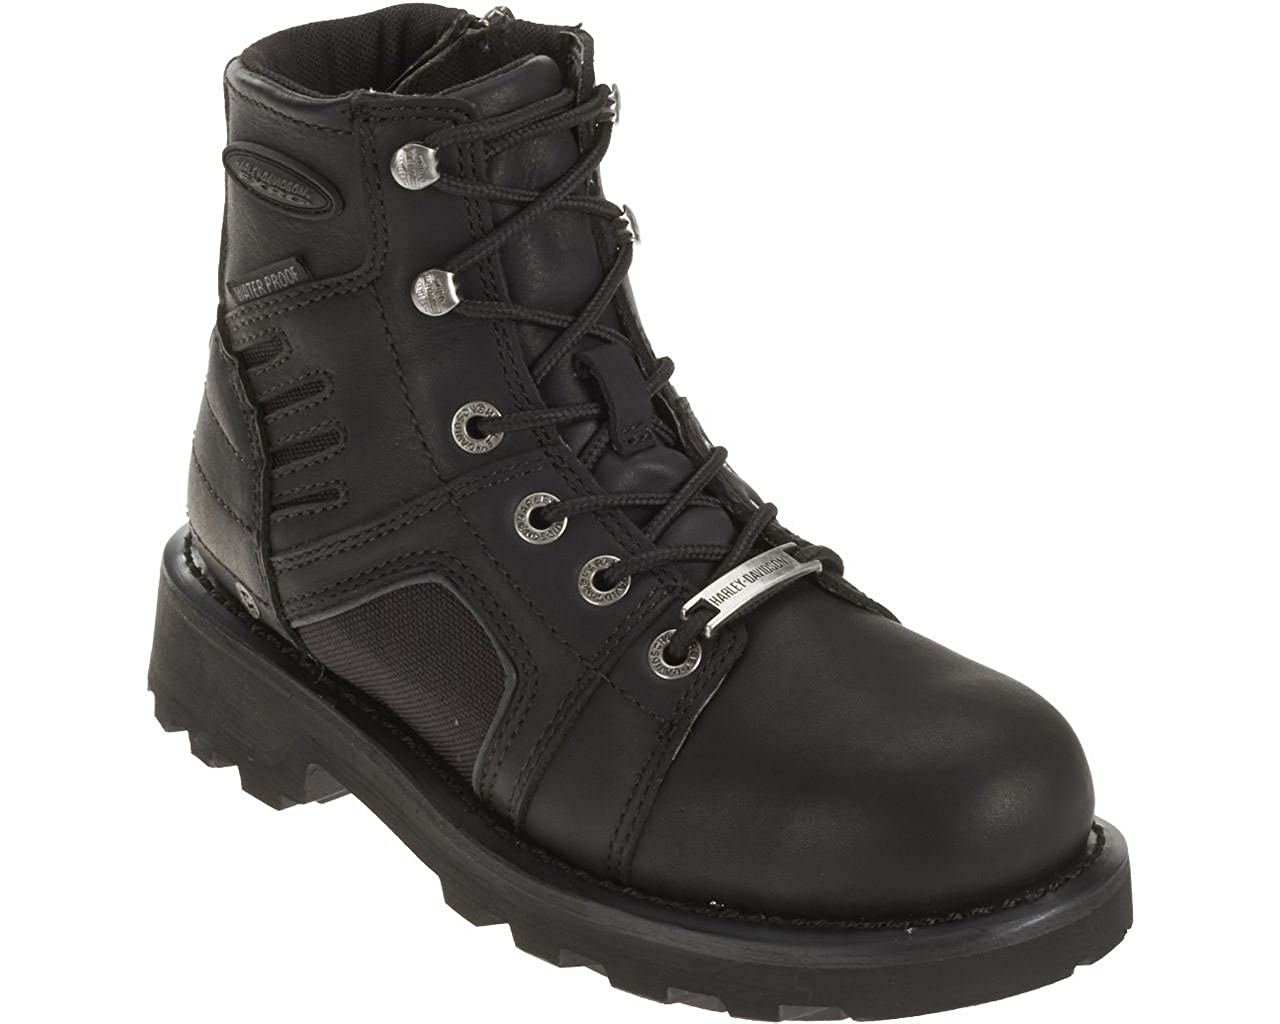 32e408f7dd6be Harley-Davidson Women's Leila Waterproof FXRG Leather Motorcycle Boots.  D87063